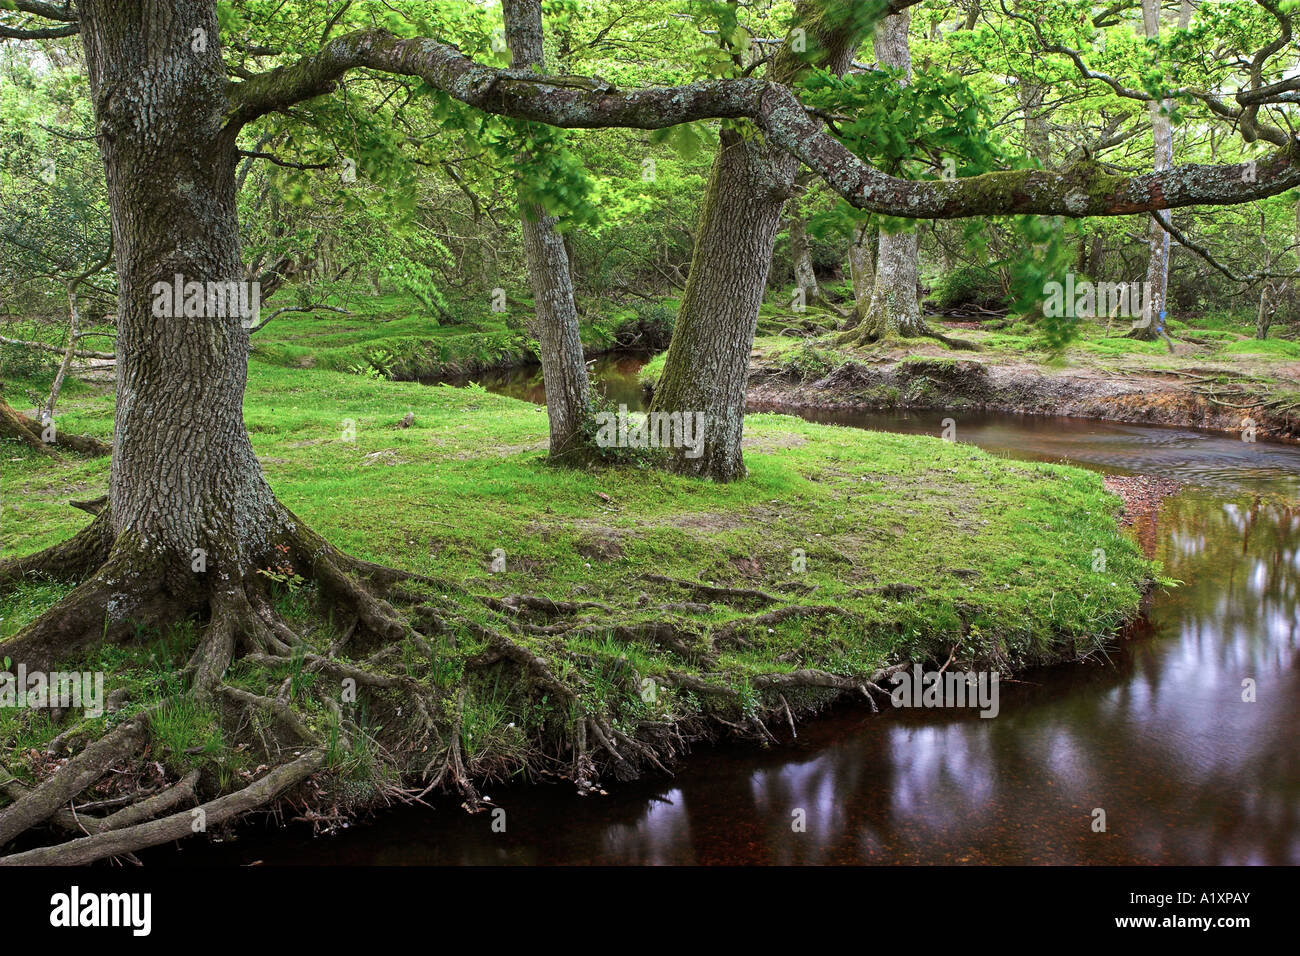 Ober Water in the New Forest National Park, Hampshire, England Stock Photo